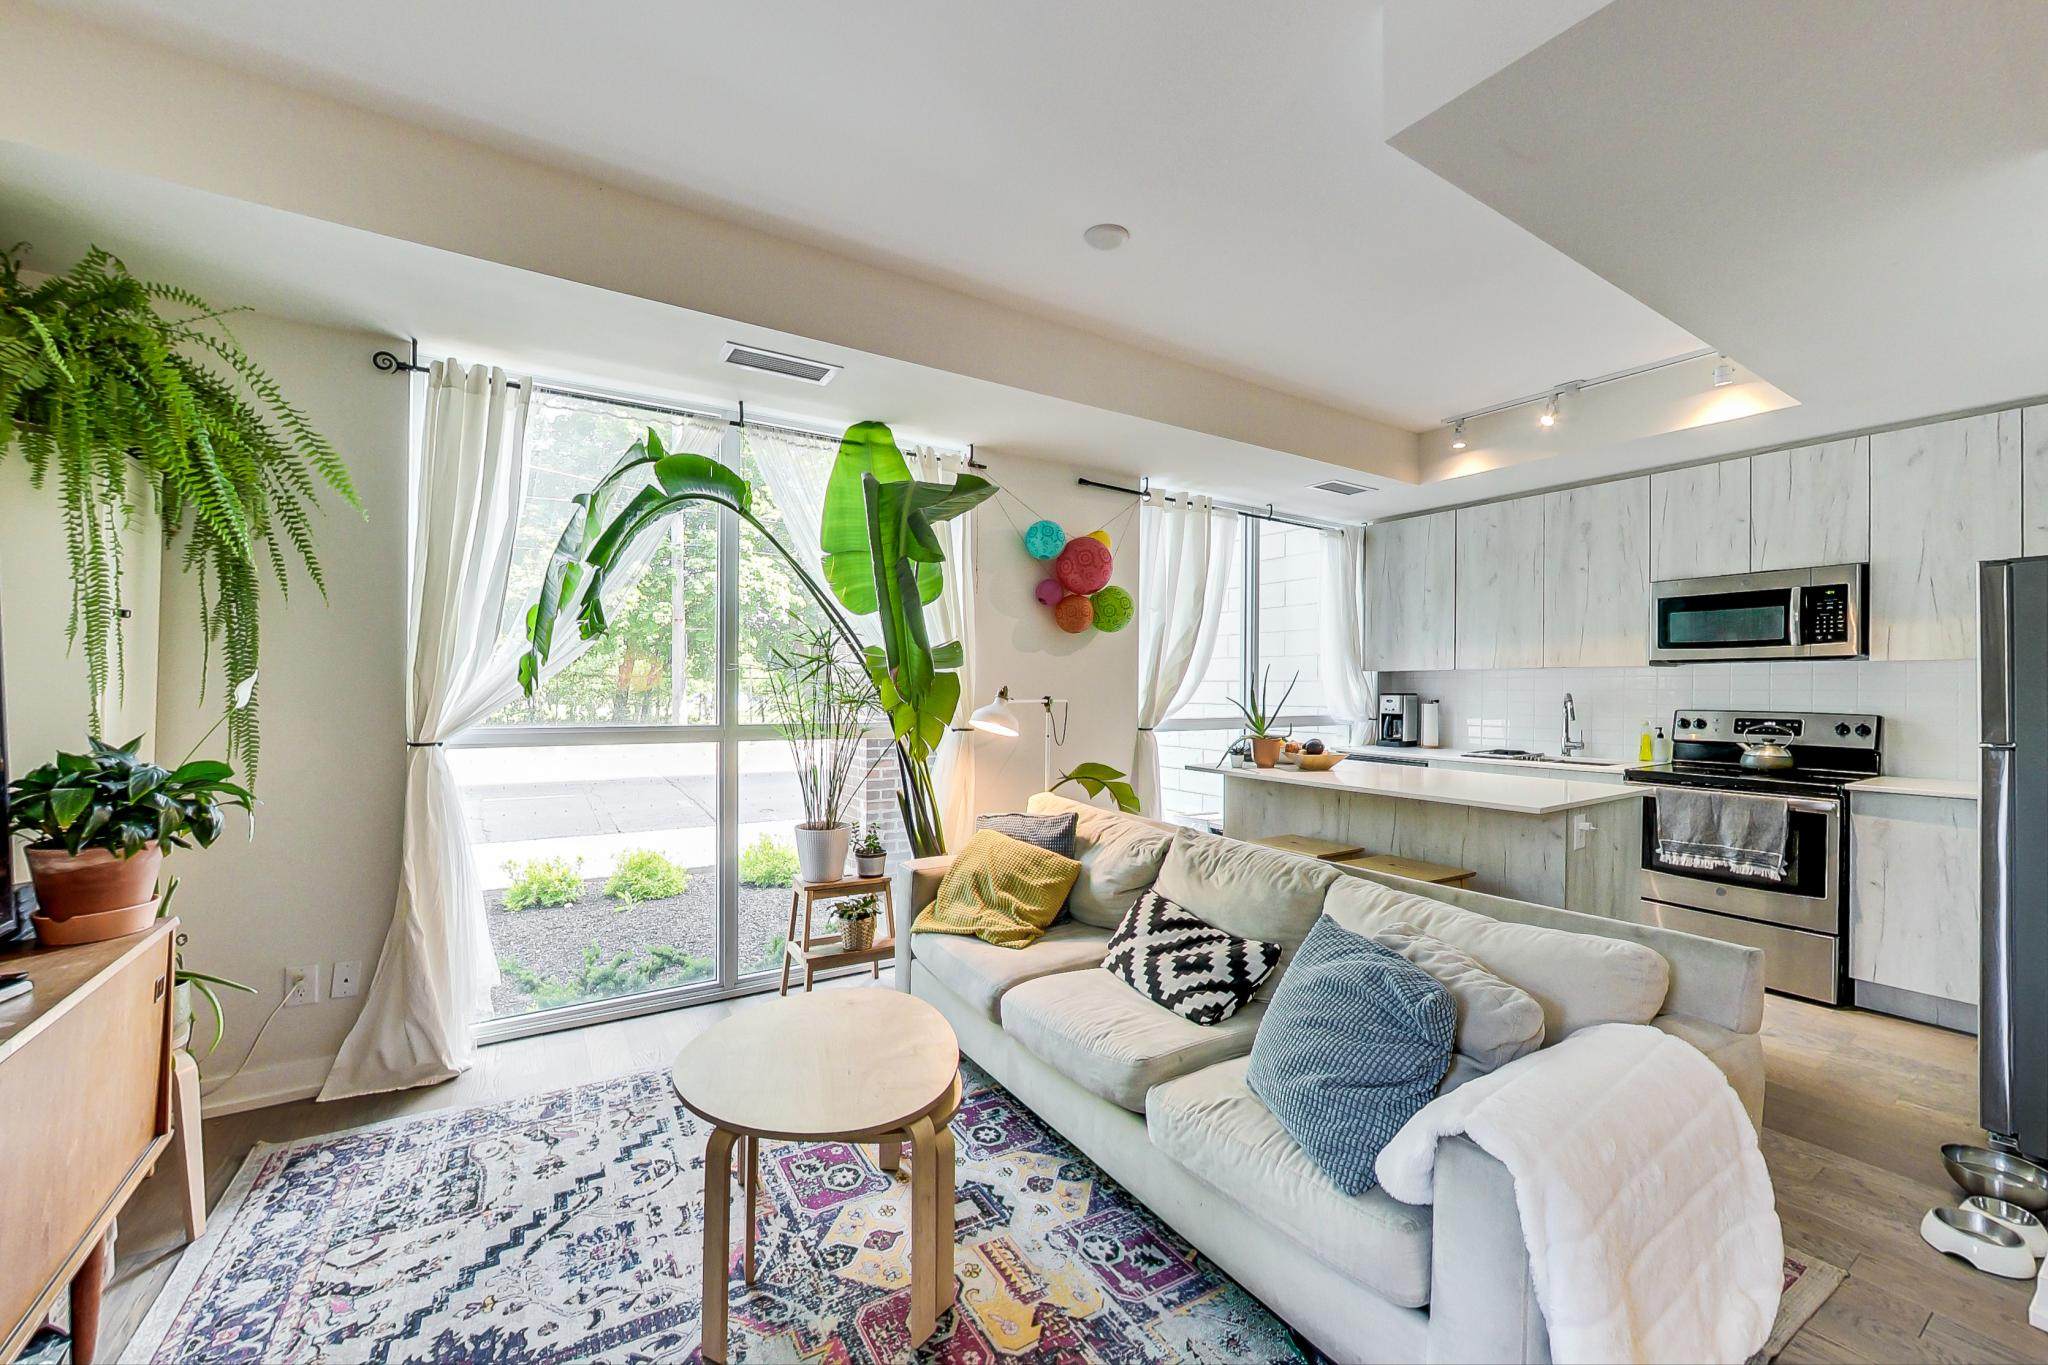 Just Listed - A Premium Condo Townhouse